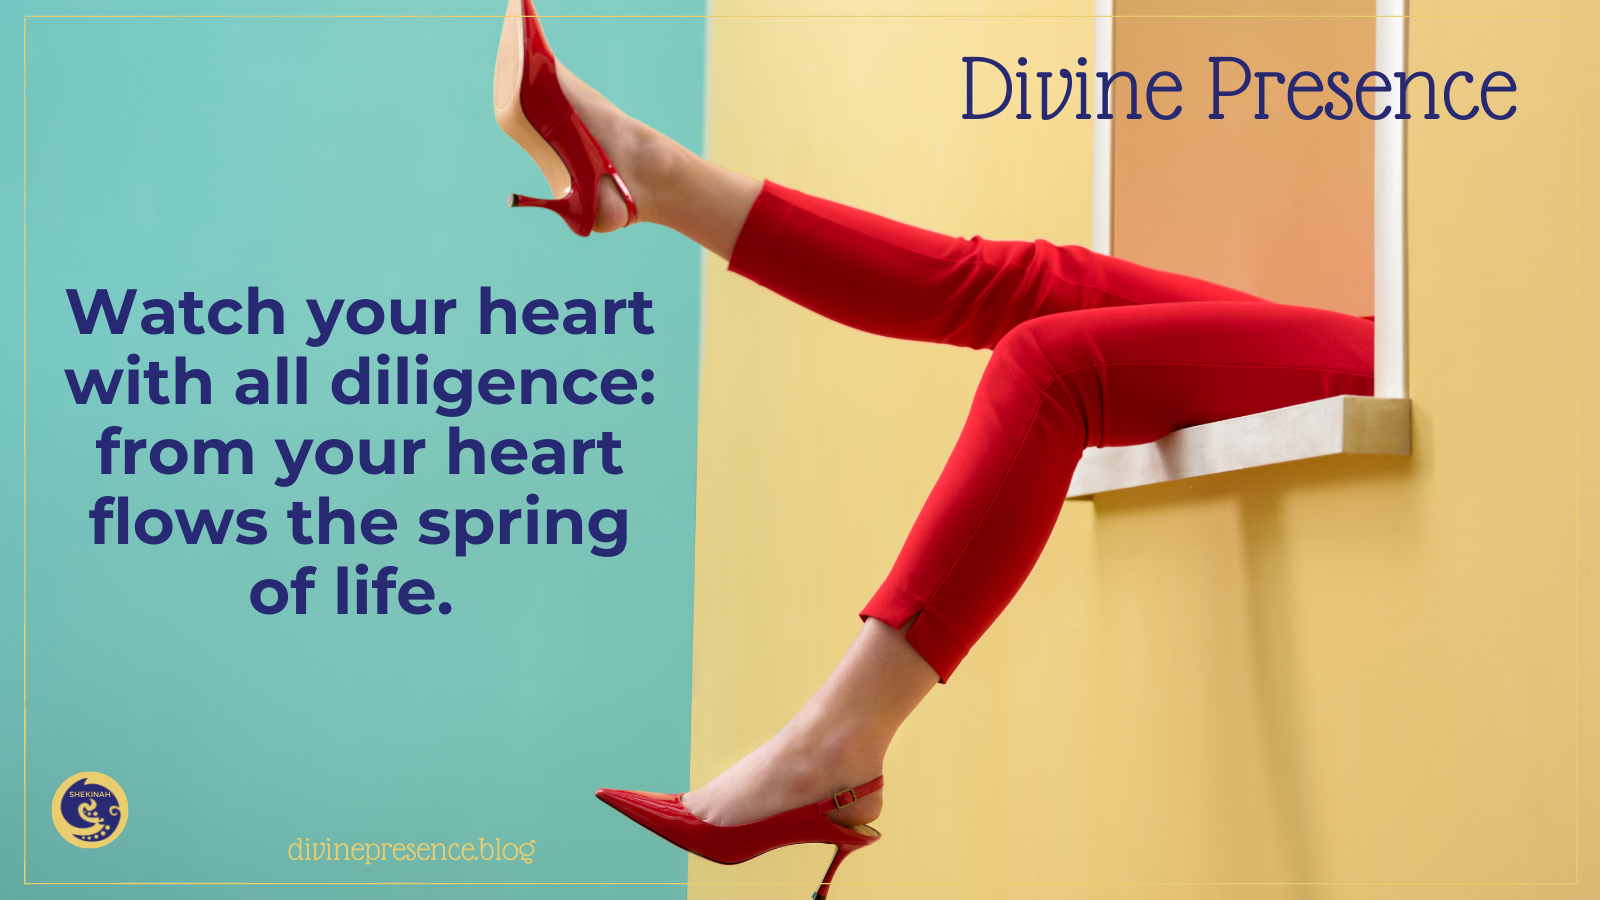 Watch your heart with all diligence: from your heart flows the spring of life. Proverbs 4:3